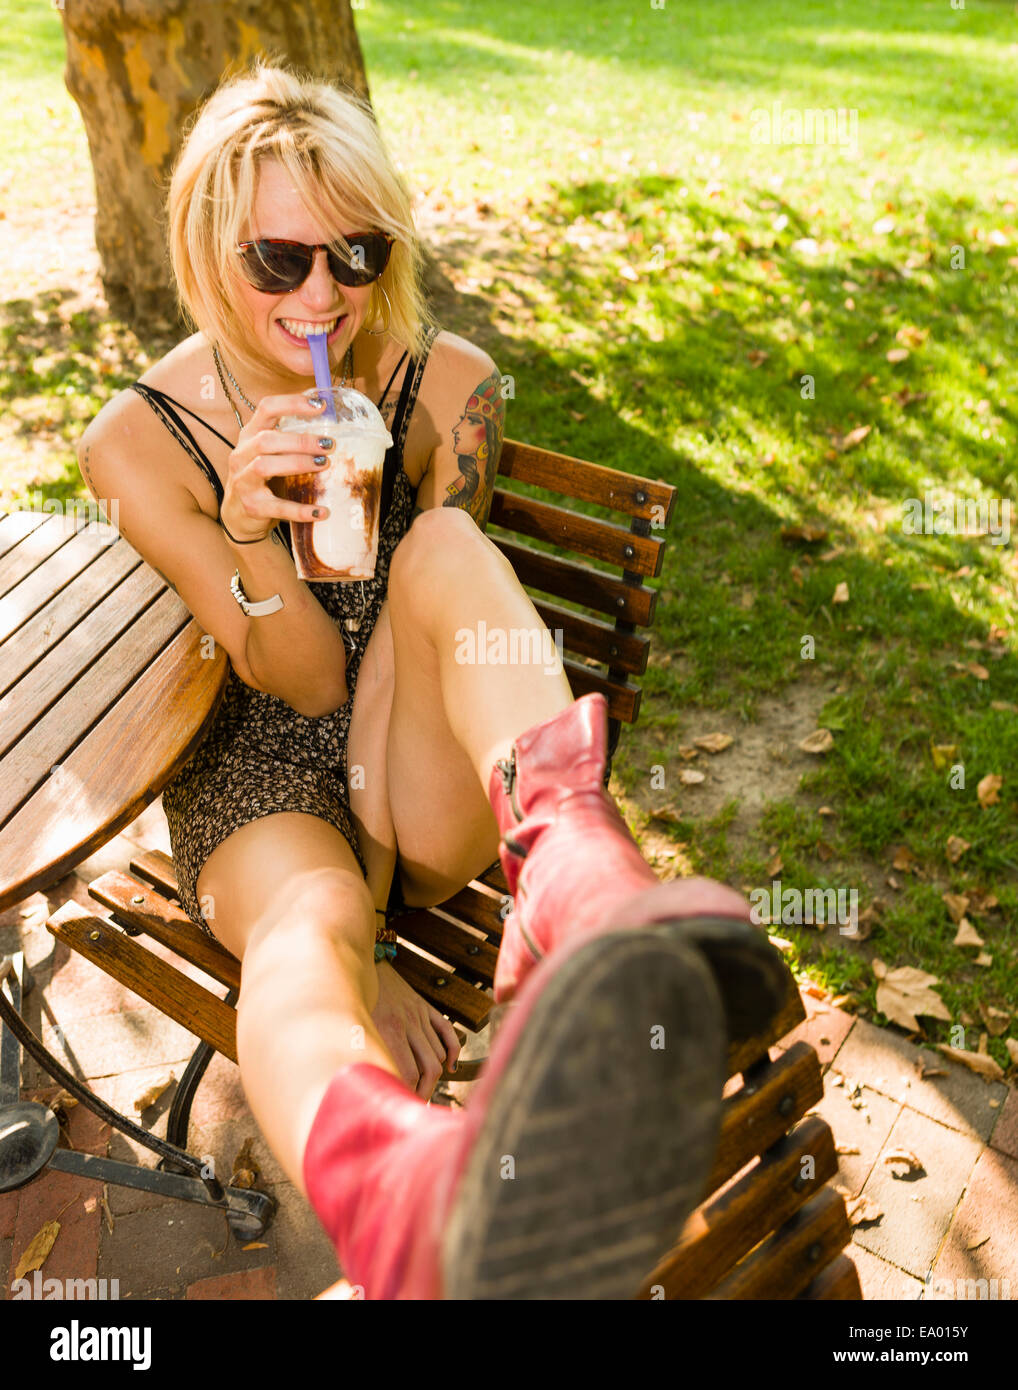 Portrait of young woman in park drinking frappe - Stock Image